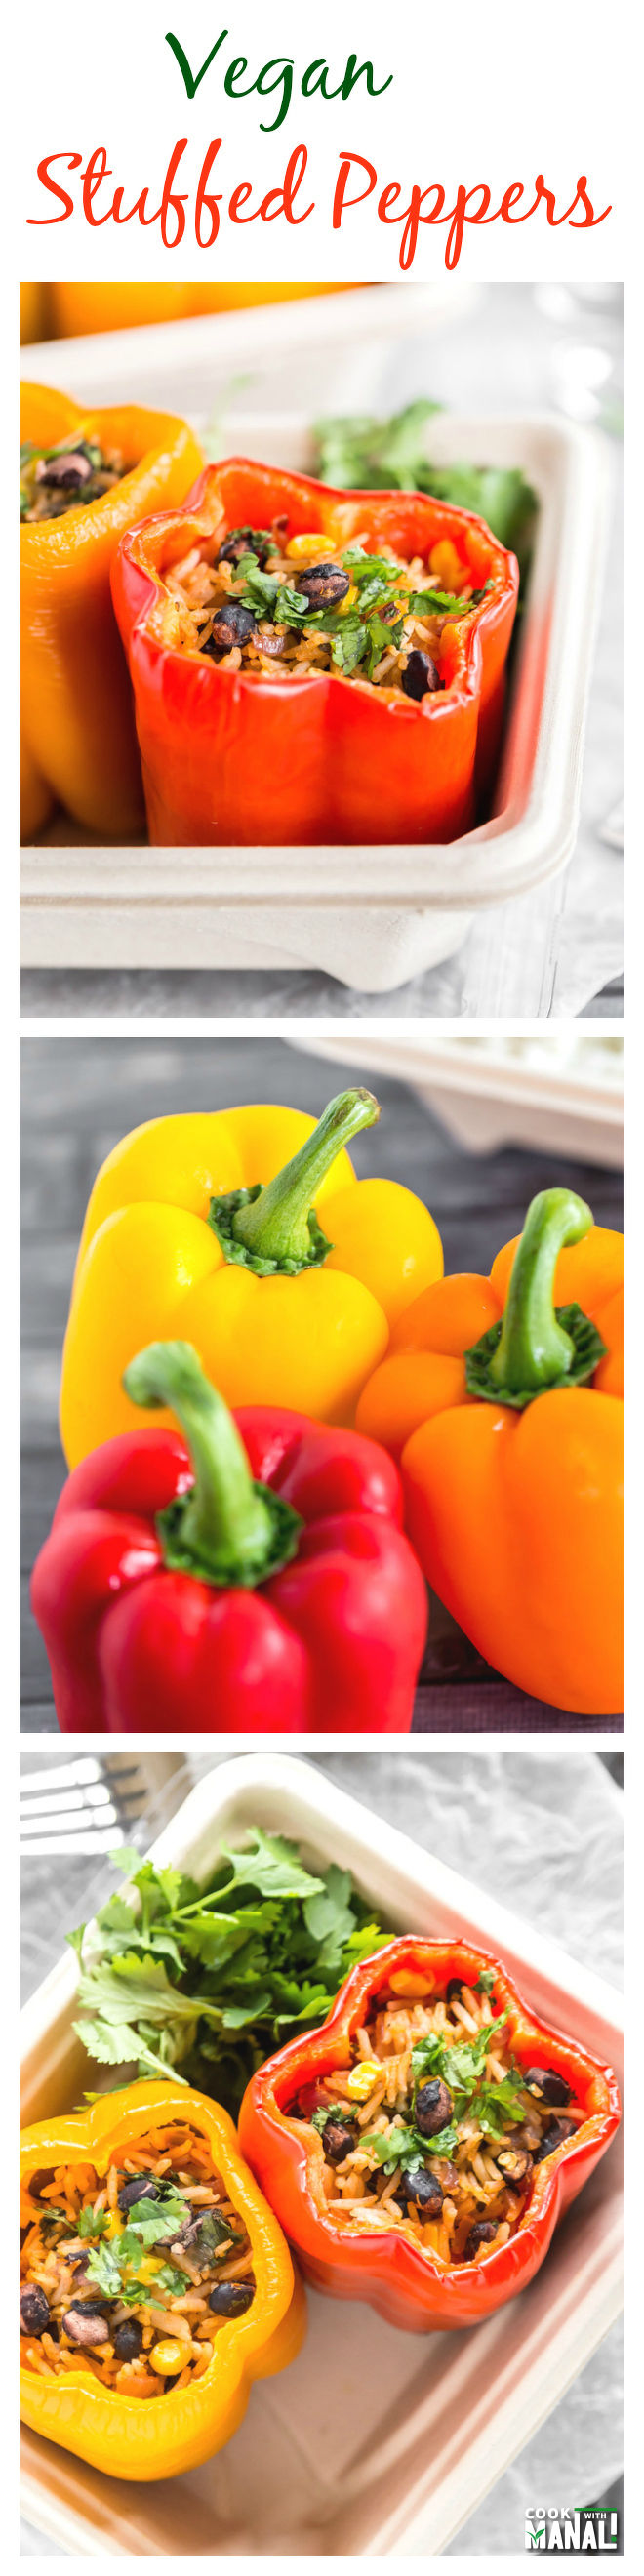 Vegan Stuffed Peppers Collage